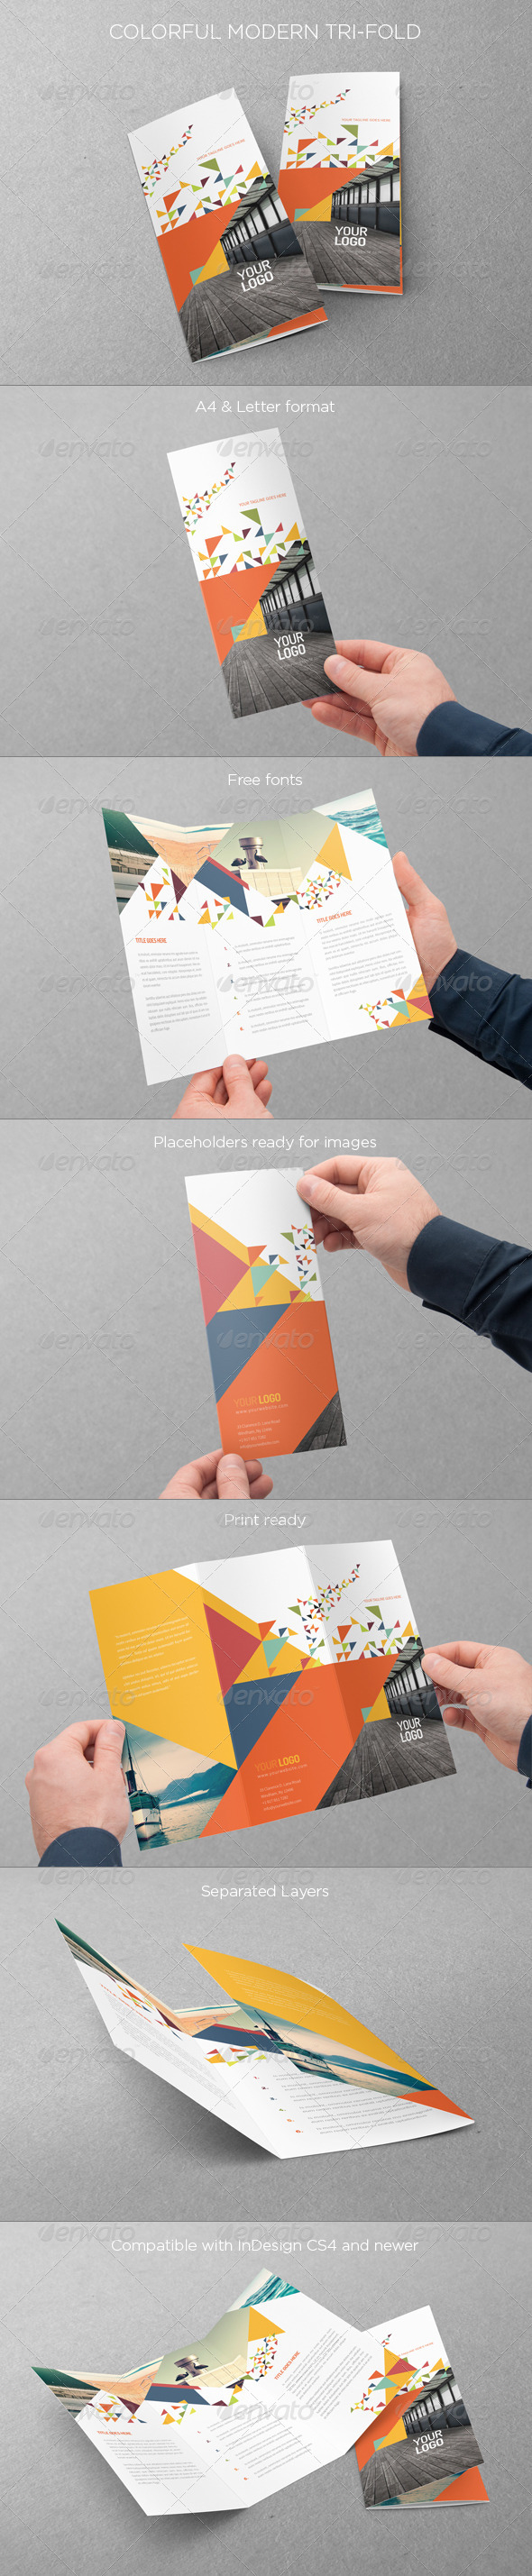 GraphicRiver Colorful Modern Trifold 7596238